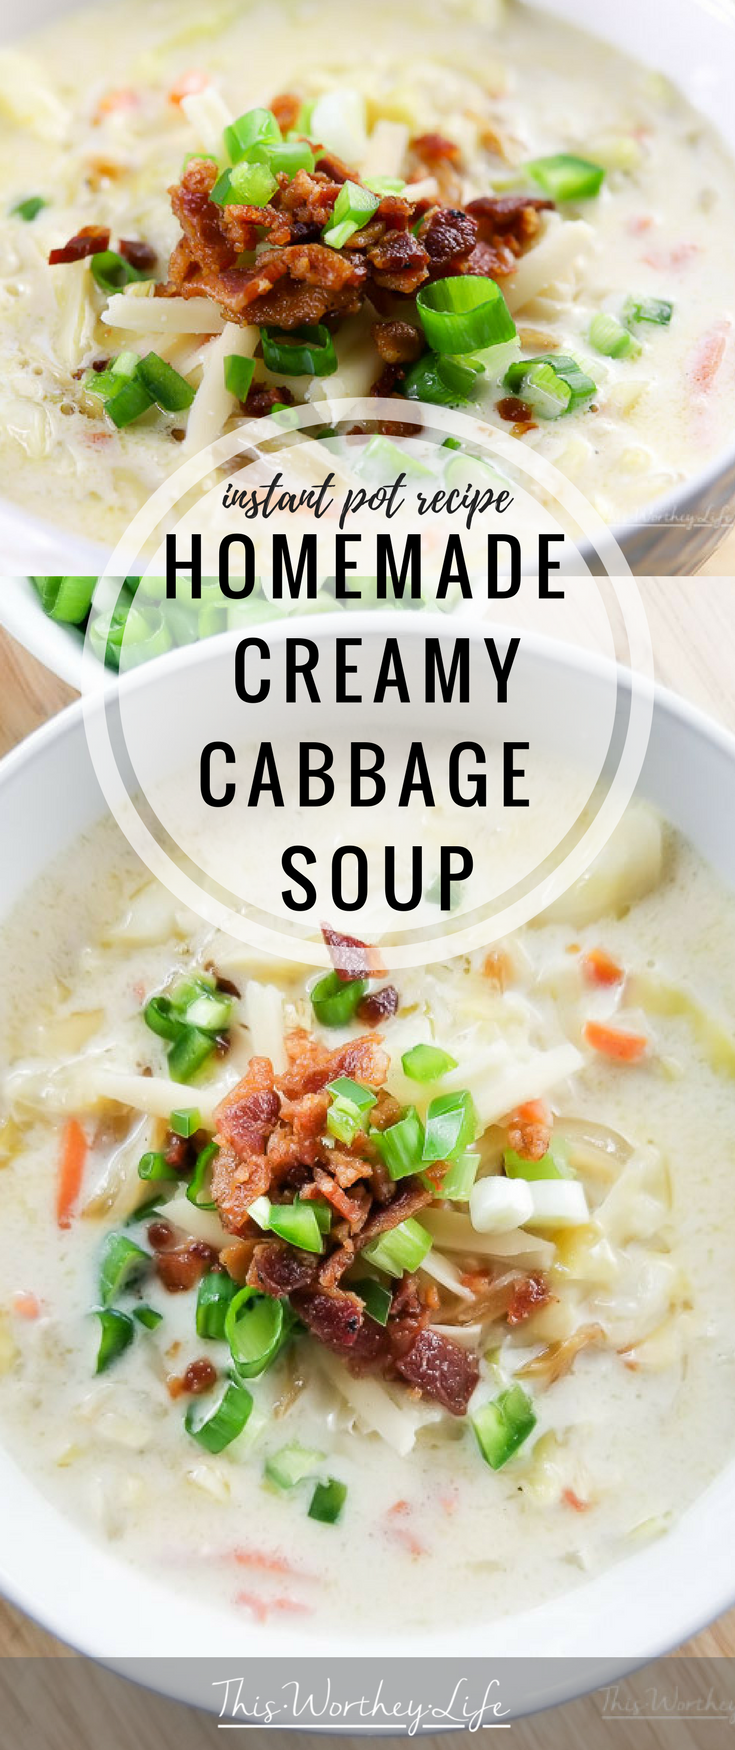 The weather may be warm, but this Instant Pot soup recipe is one you will not only want to make in the winter, but in spring, summer, and fall. Our homemade Creamy Cabbage Soup is filled with fresh ingredients, a fine cheese, caramelized onions, fresh cabbage, and topped with thick-cut bacon. Yes, this recipe is drool-worthy, hearty, and will leave you wanting more. It's just that good.